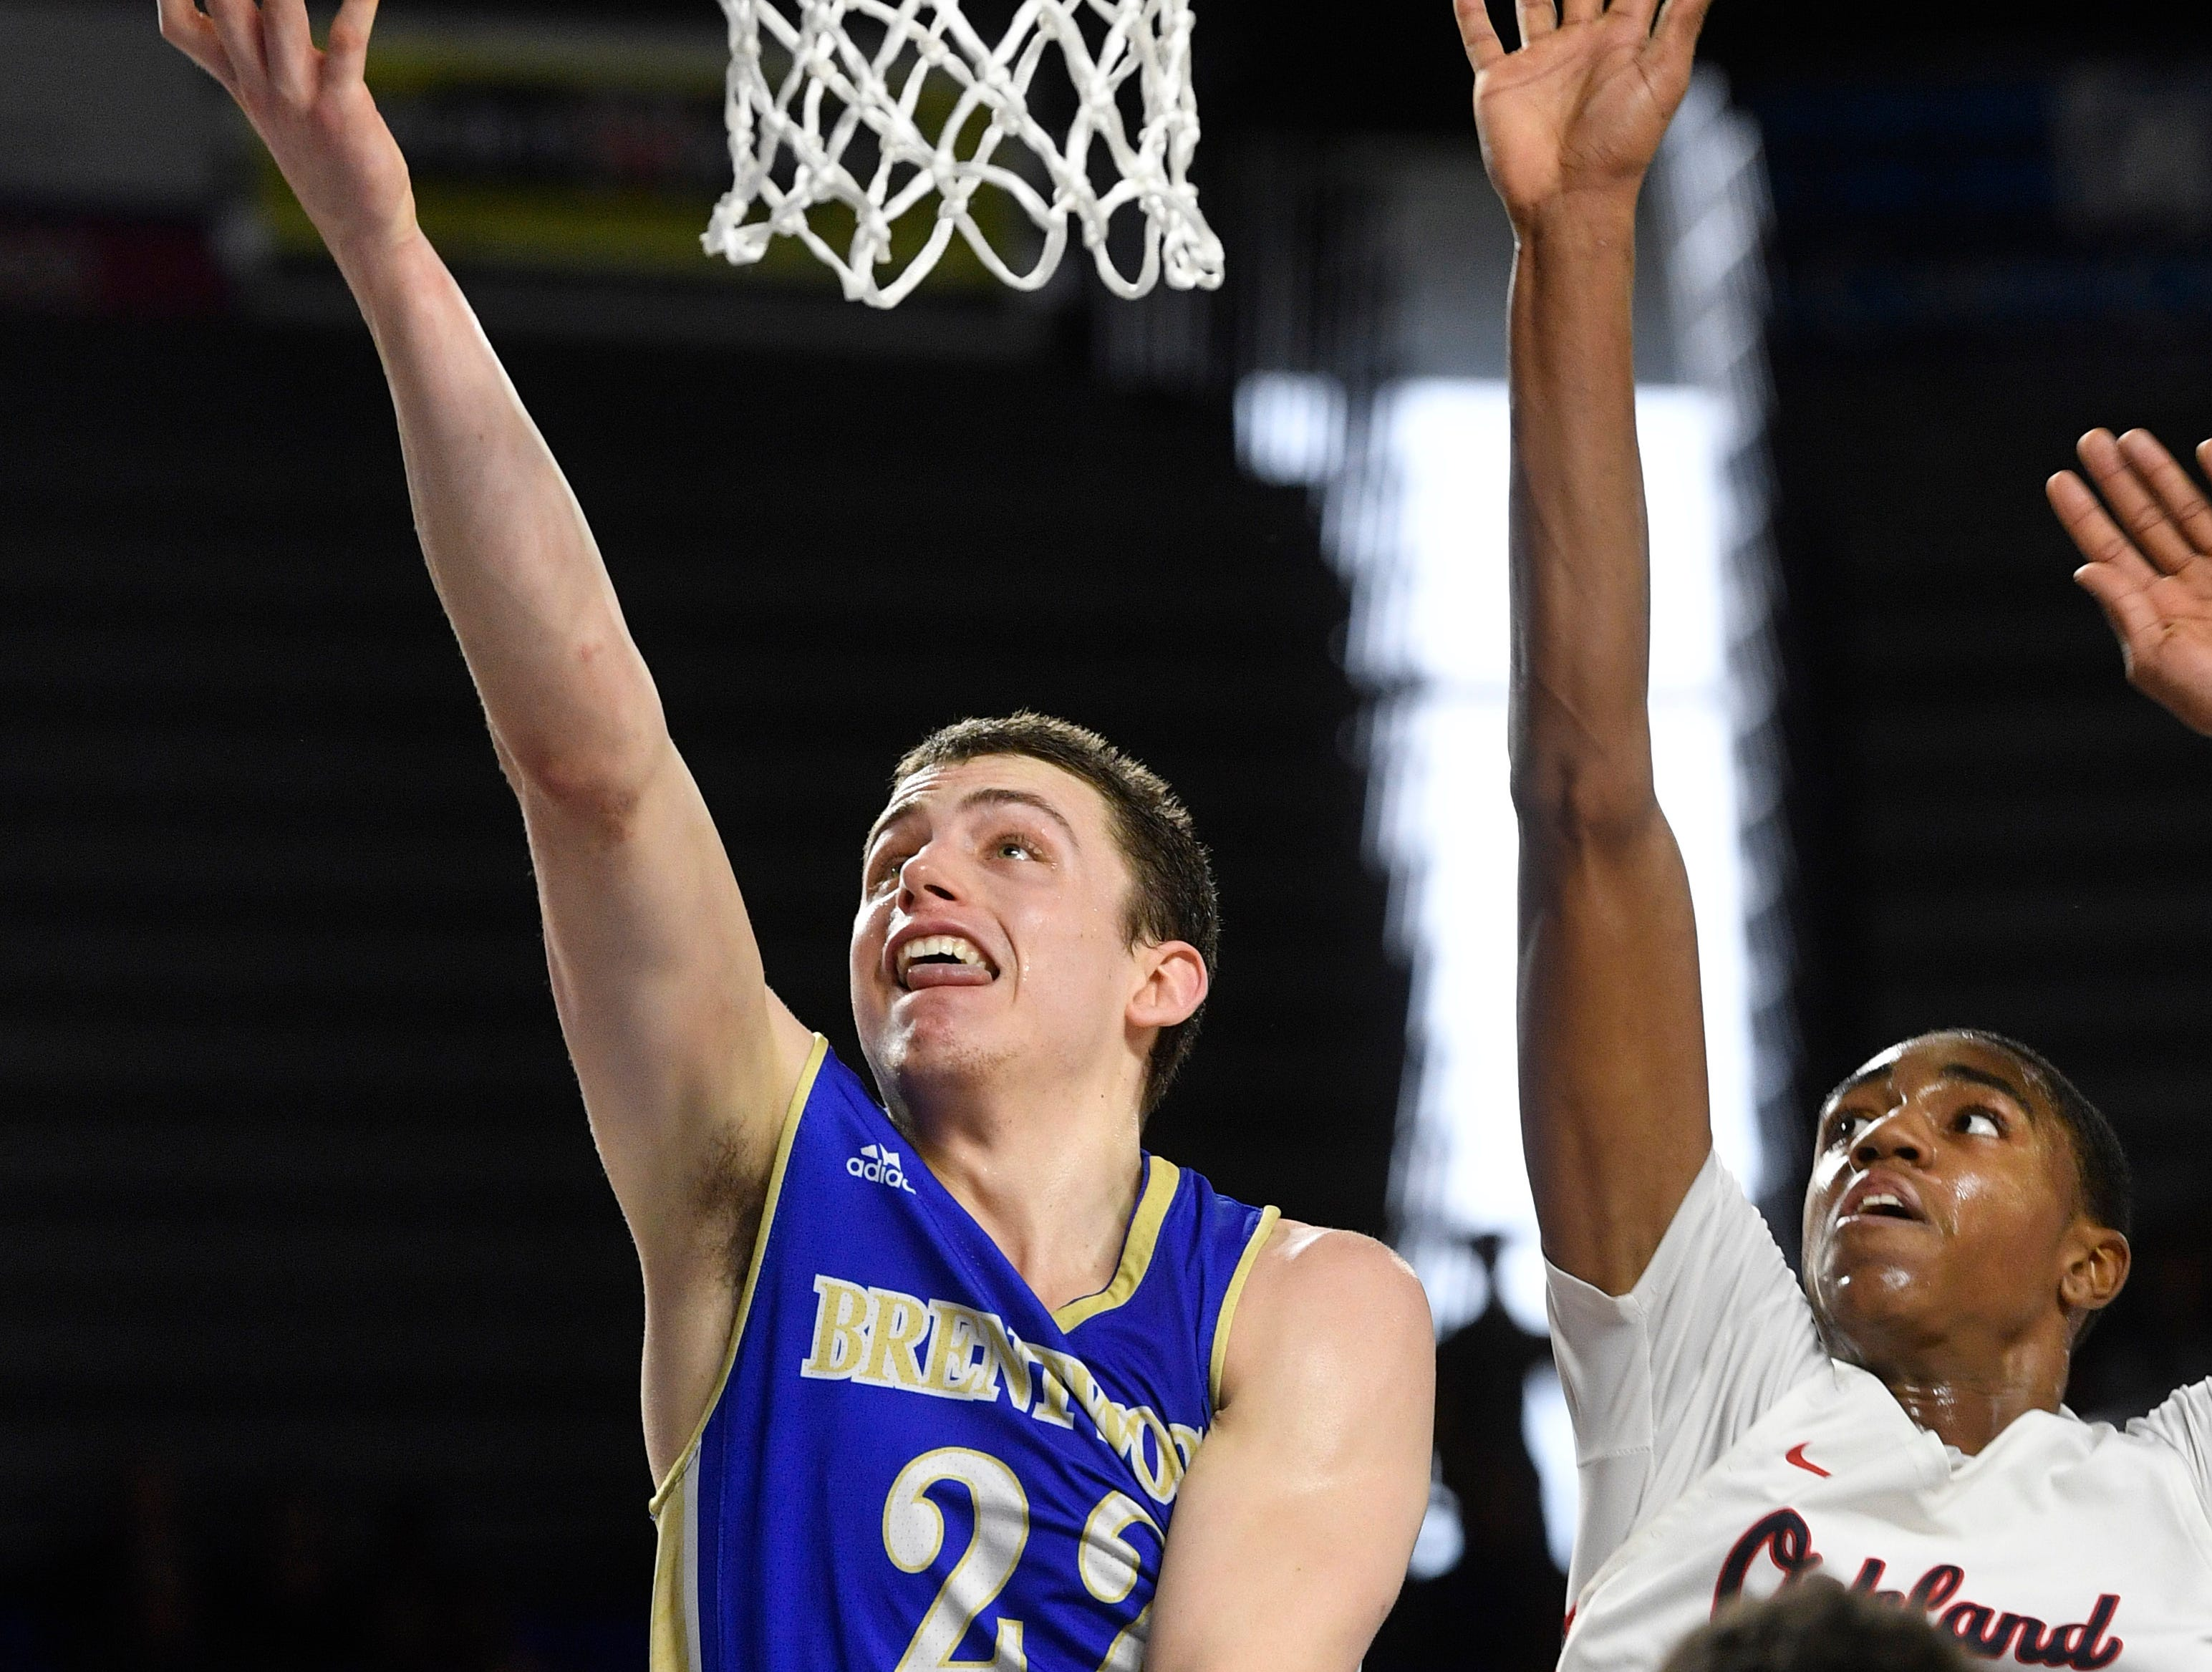 Brentwood's Harry Lackey (22) goes for the layup as Brentwood plays Oakland in the TSSAA Class AAA quarterfinals  Thursday, March 14, 2019, in Murfreesboro, Tenn.